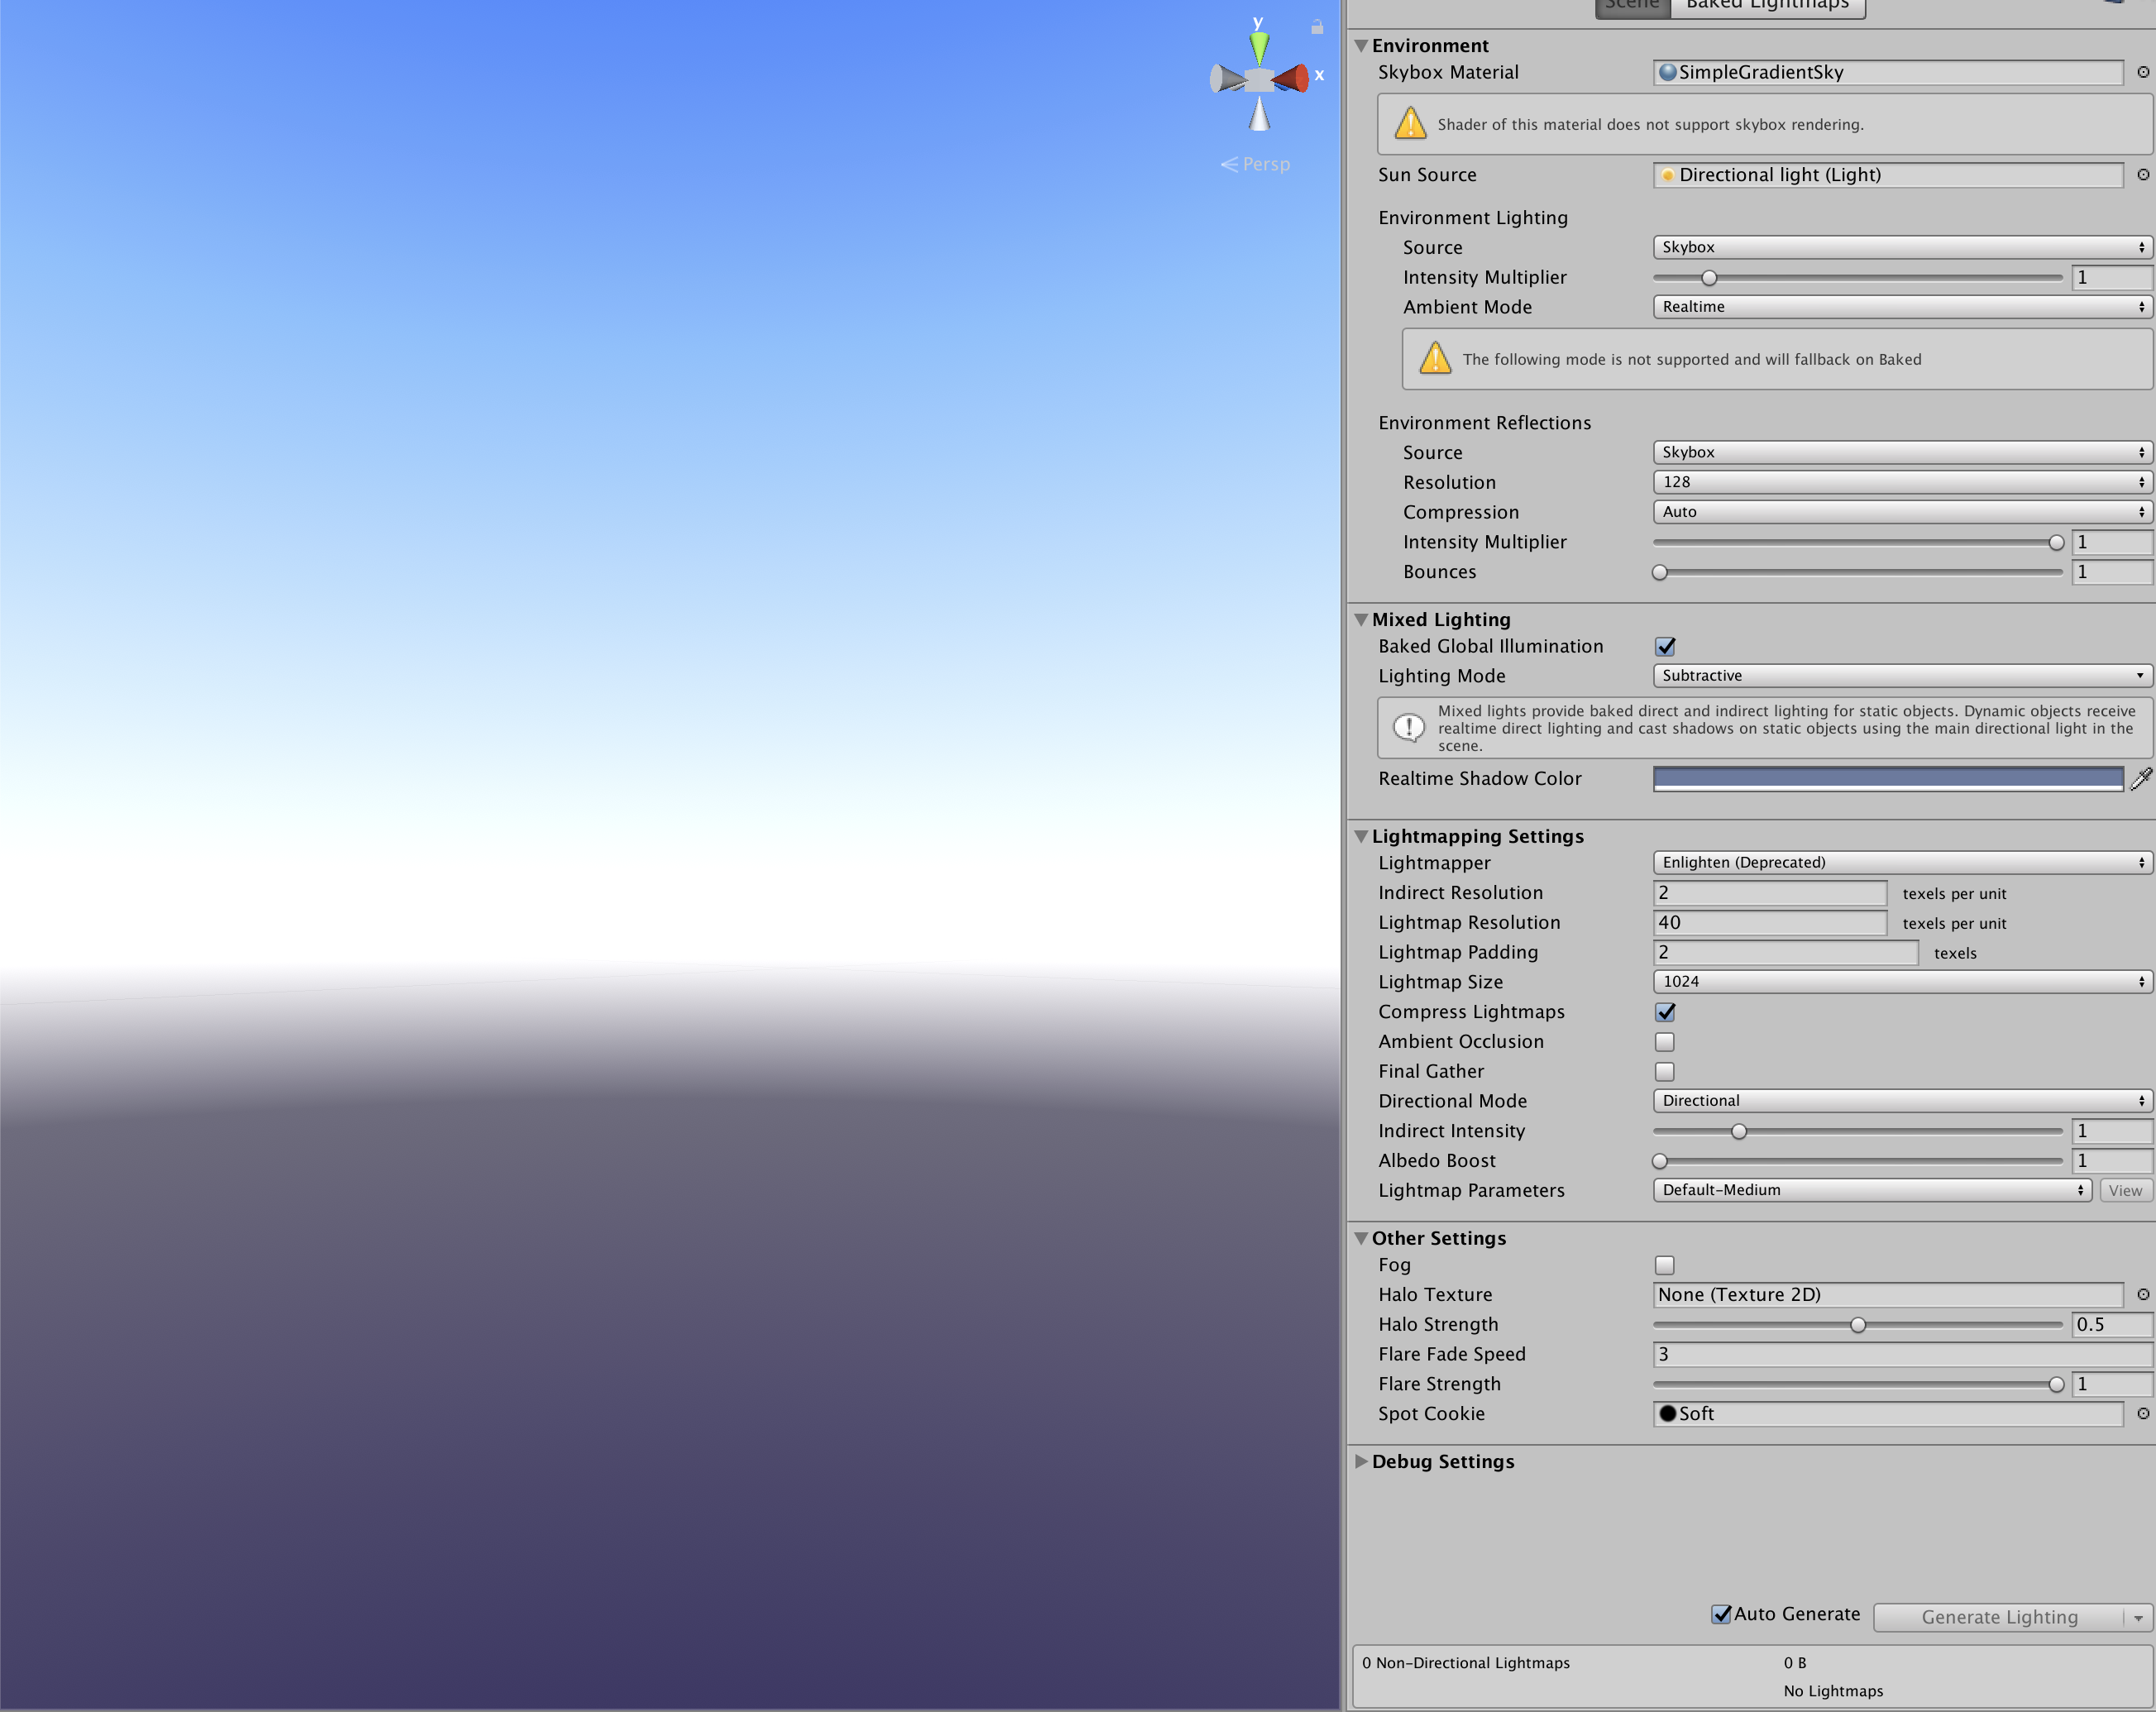 Image displaying the shader graph skybox material added to the scene's lighting settings.